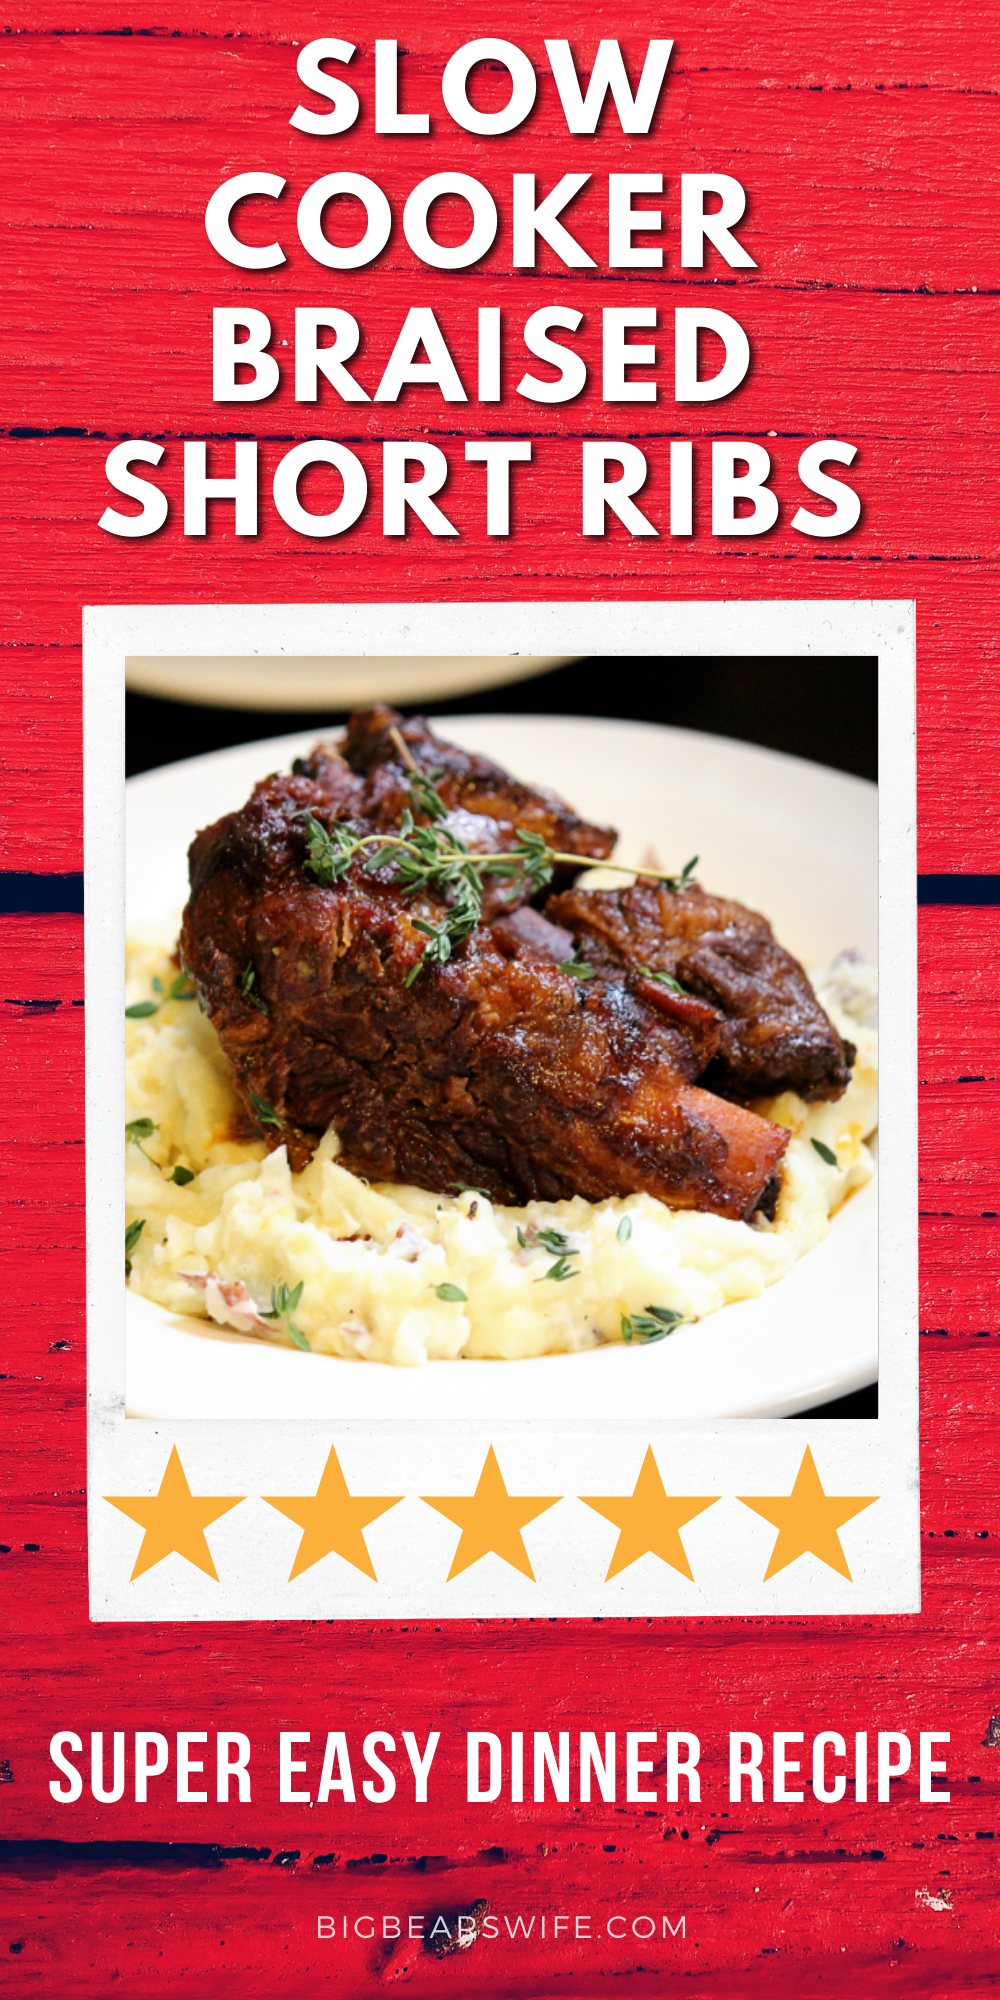 Slow Cooker Braised Short Ribs - Ready to make one of the most popular recipes on BigBearsWife.com. These Slow Cooker Braised Short Ribs are always a hit! This is the best beef short ribs recipe in my opinion. Perfect for a weekday dinner or for a fancy Sunday Dinner! This dinner recipe is super easy to make and it taste amazing!  via @bigbearswife